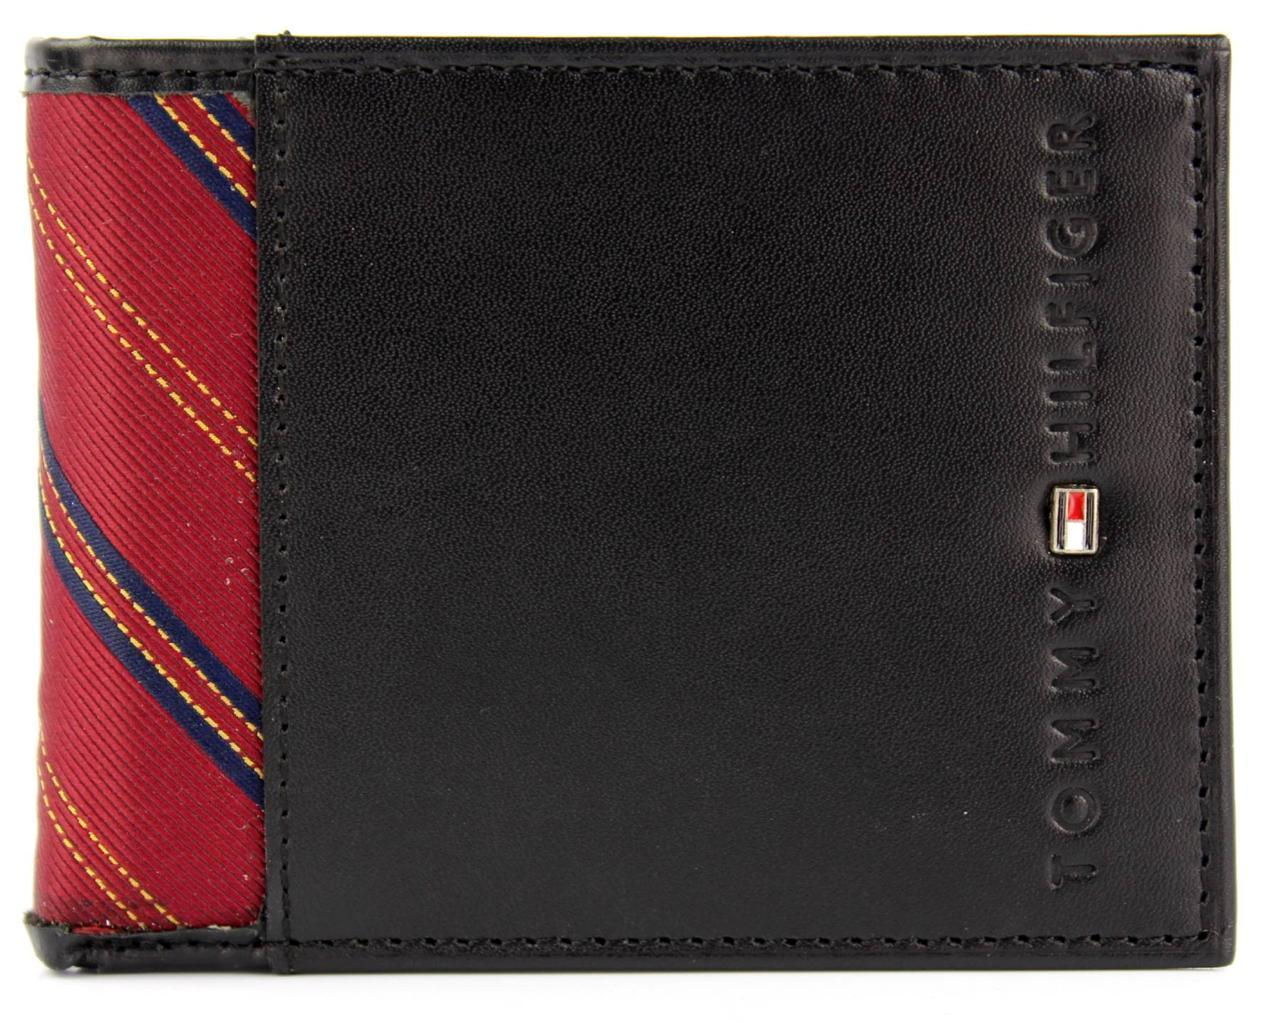 NEW TOMMY HILFIGER MEN'S PREMIUM BLACK LEATHER PASSCASE BILLFOLD WALLET 4272/01